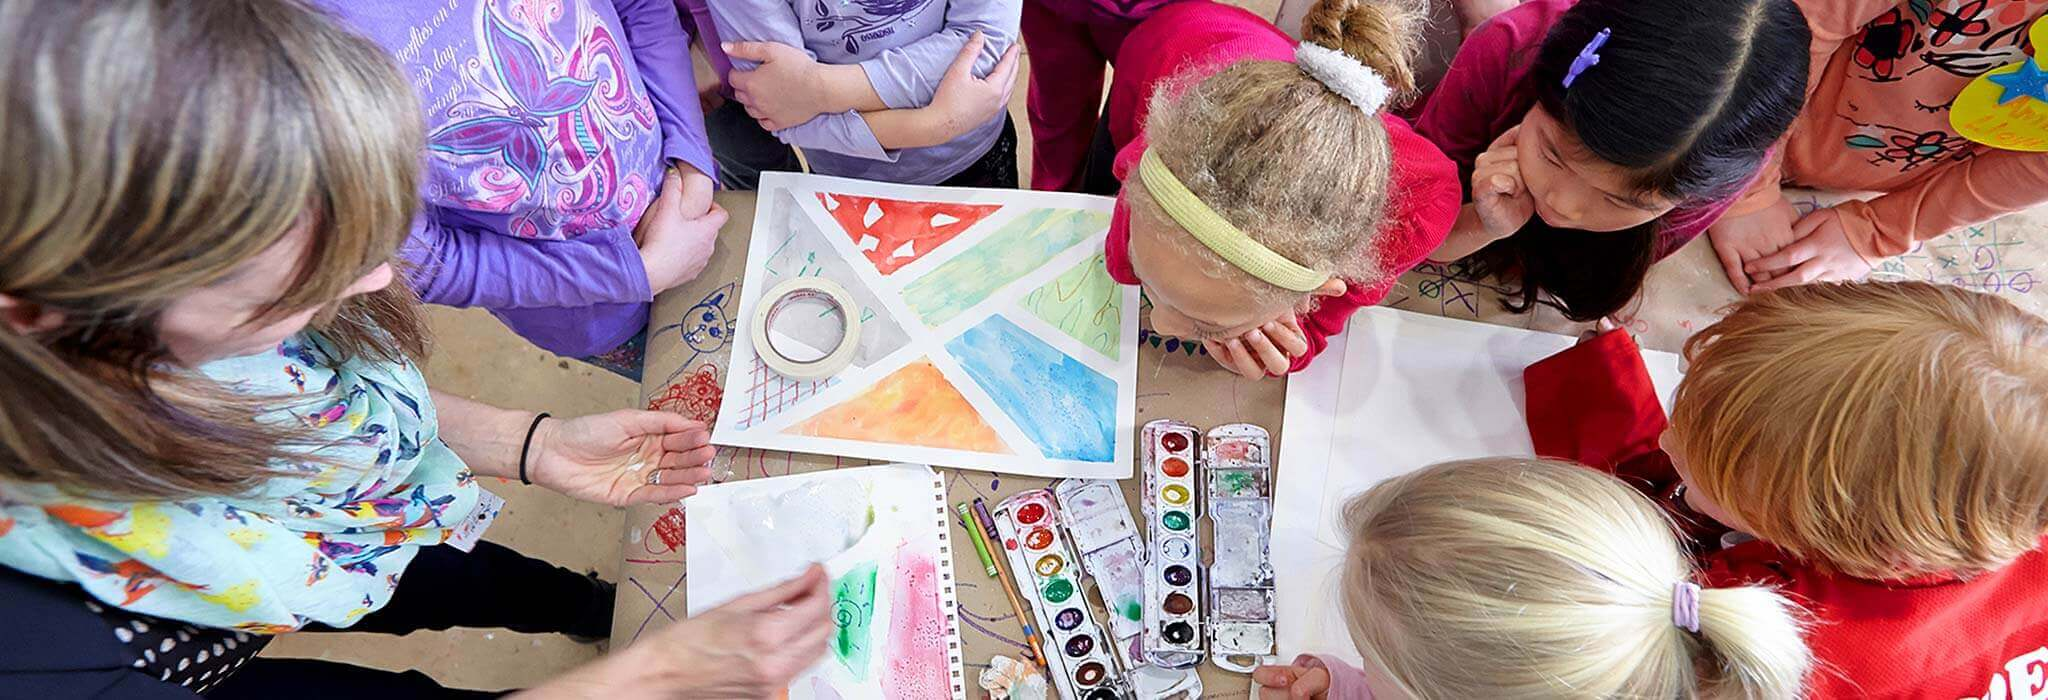 Art Gallery of Hamilton - Day Camp Program Information